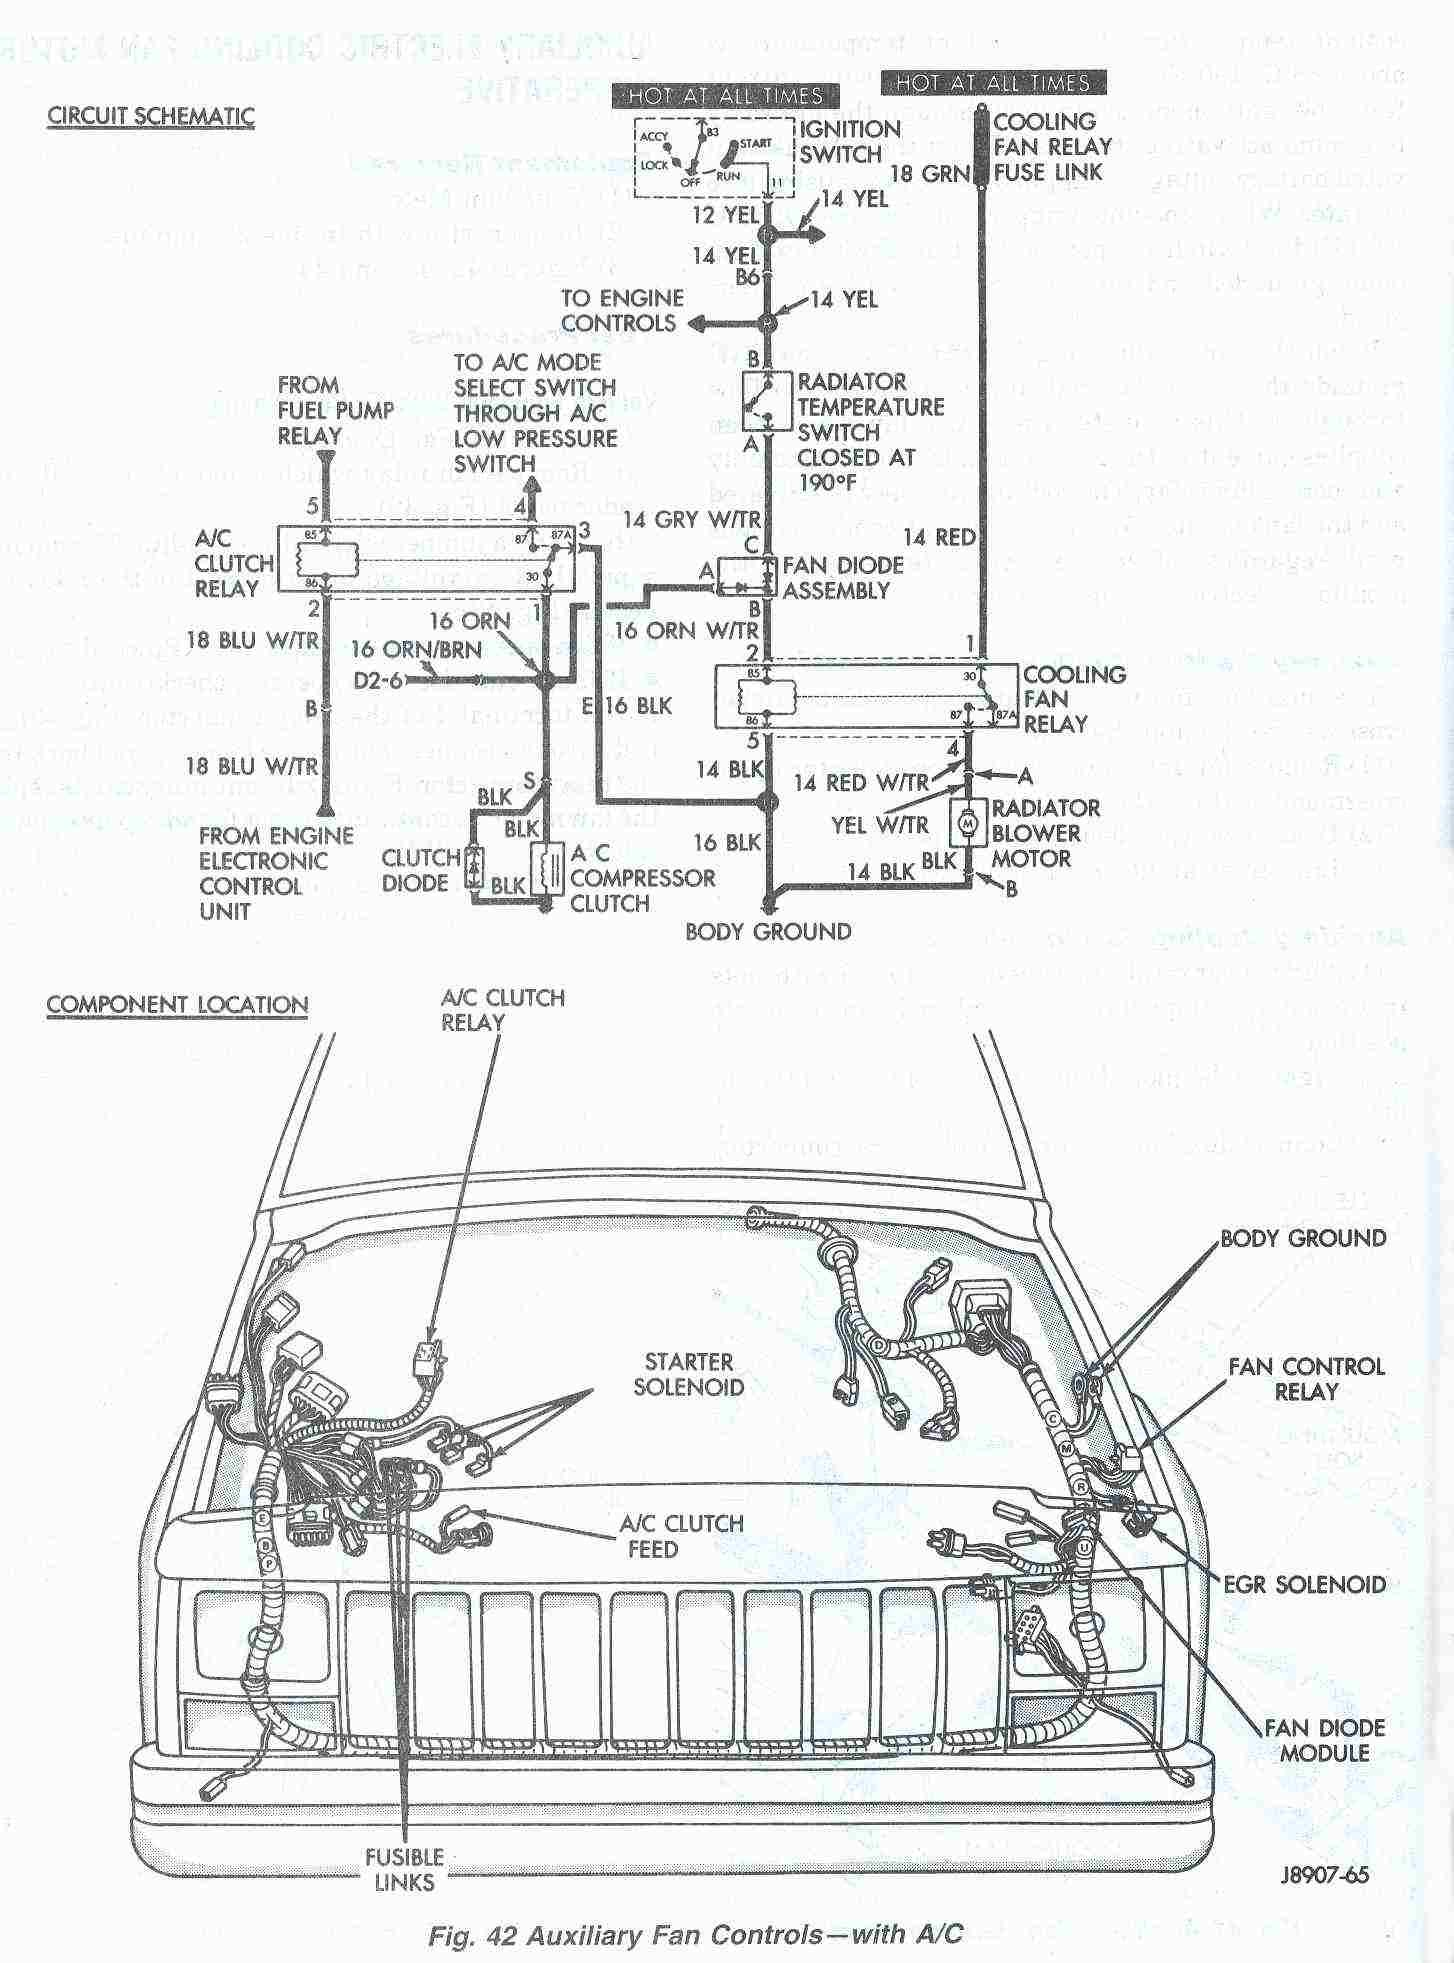 1997 Jeep Cherokee Engine Diagram Wiring Diagram Centre 1997 Grand Cherokee Engine Diagrams